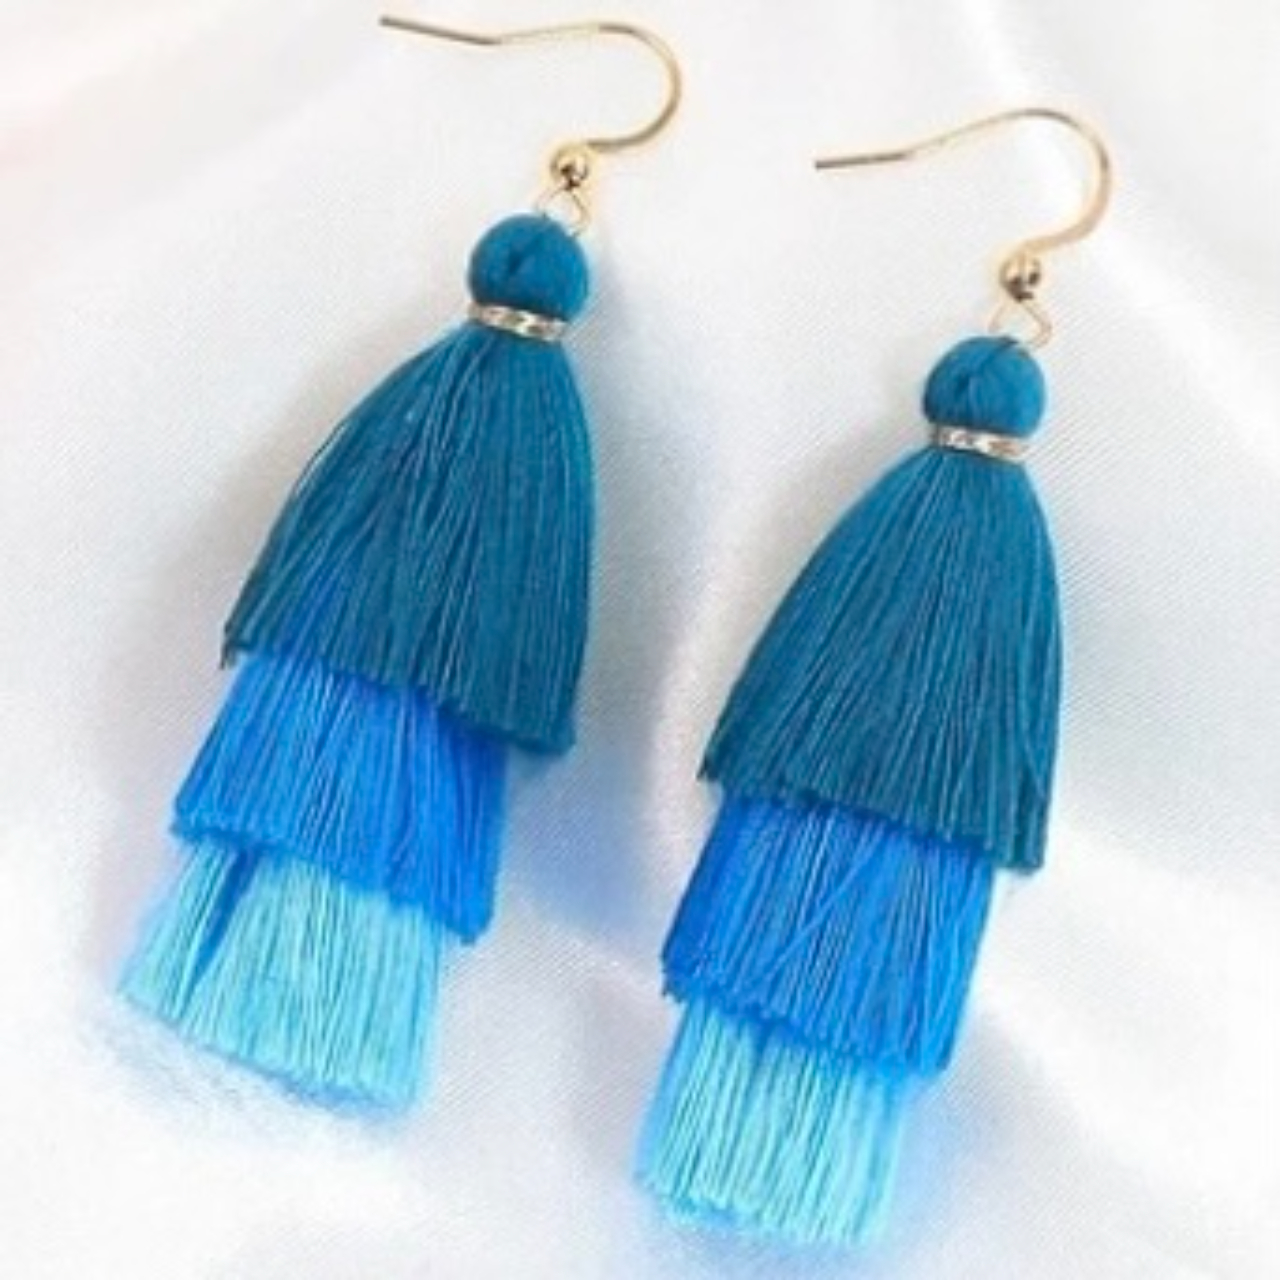 Product Image 1 - Adorable tiered tassel earrings  Available in